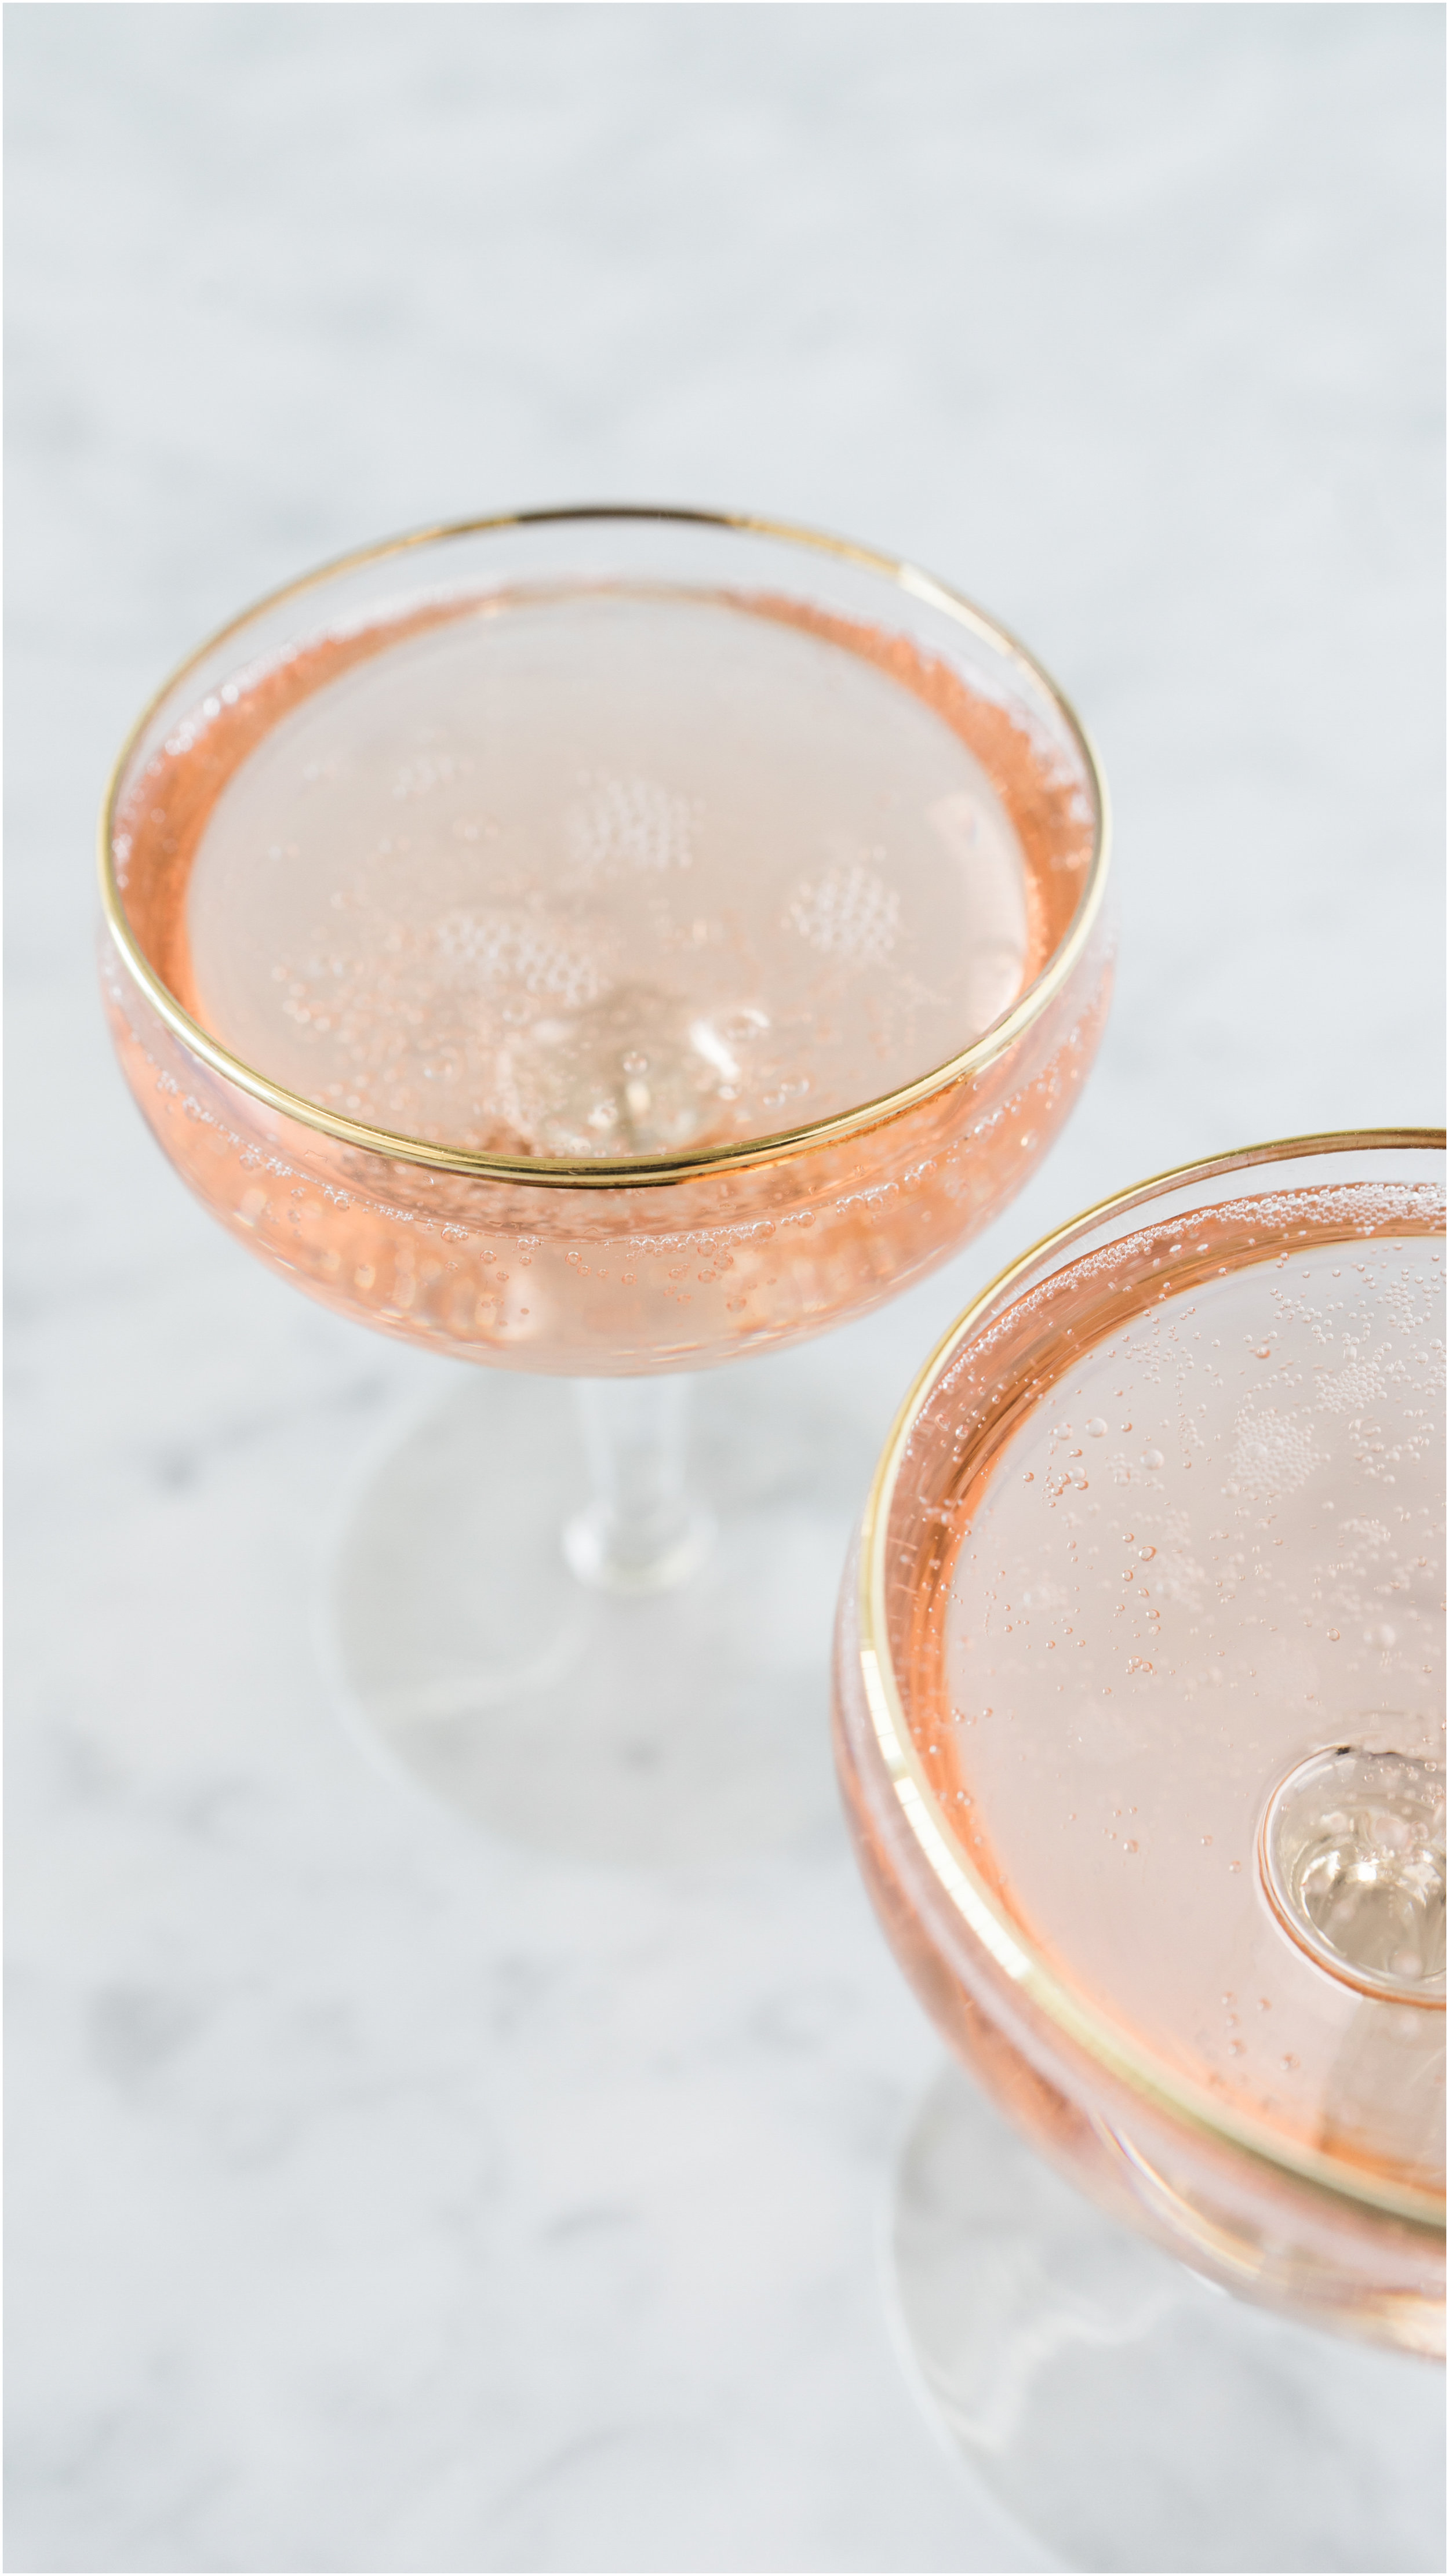 Champagne Signing Session   Buying or selling a home is a big accomplishment! Celebrate in style with our optional champagne signing session, compliments of your team at Waldrop  &  Co. Realtors!